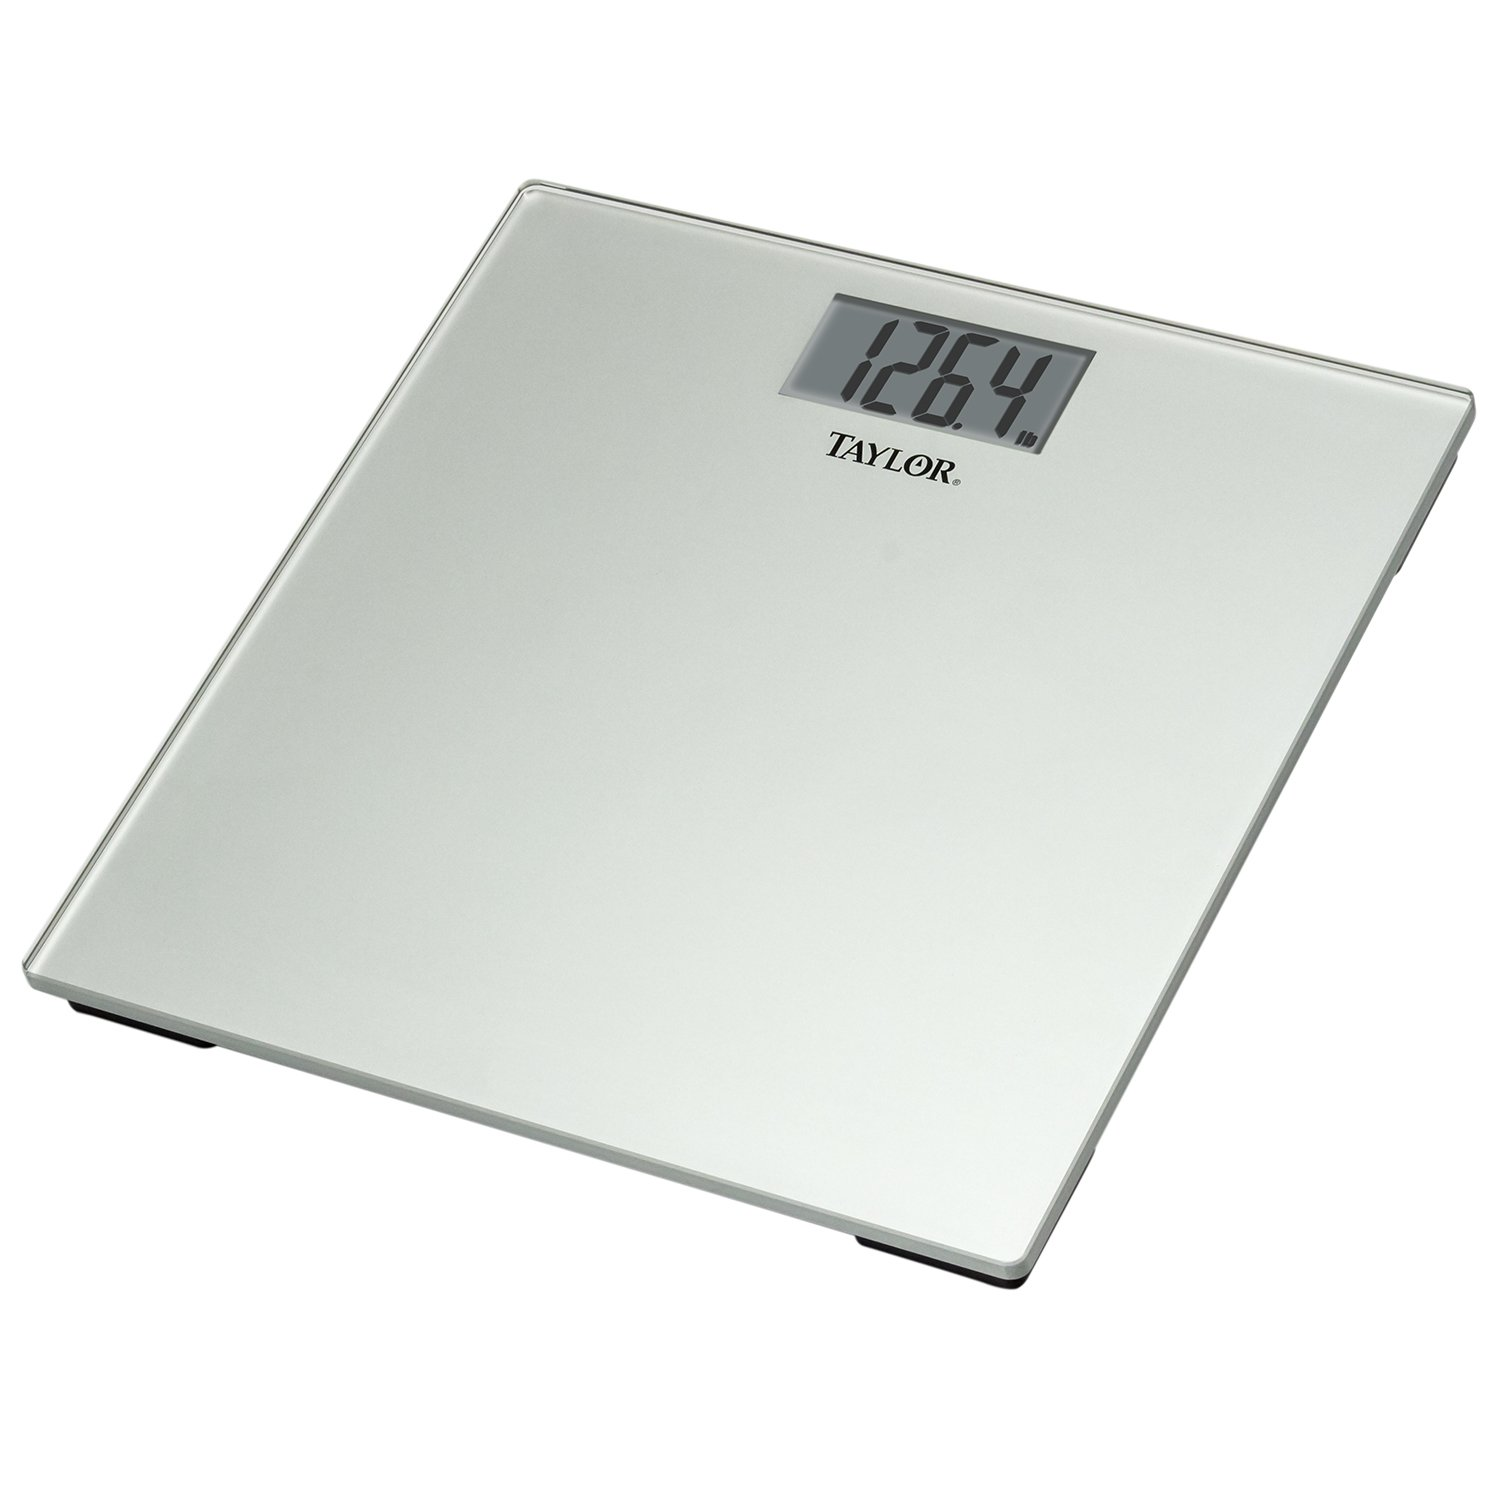 Amazon.com: Taylor Precision Products Glass Digital Bath Scale (Silver): Health & Personal Care